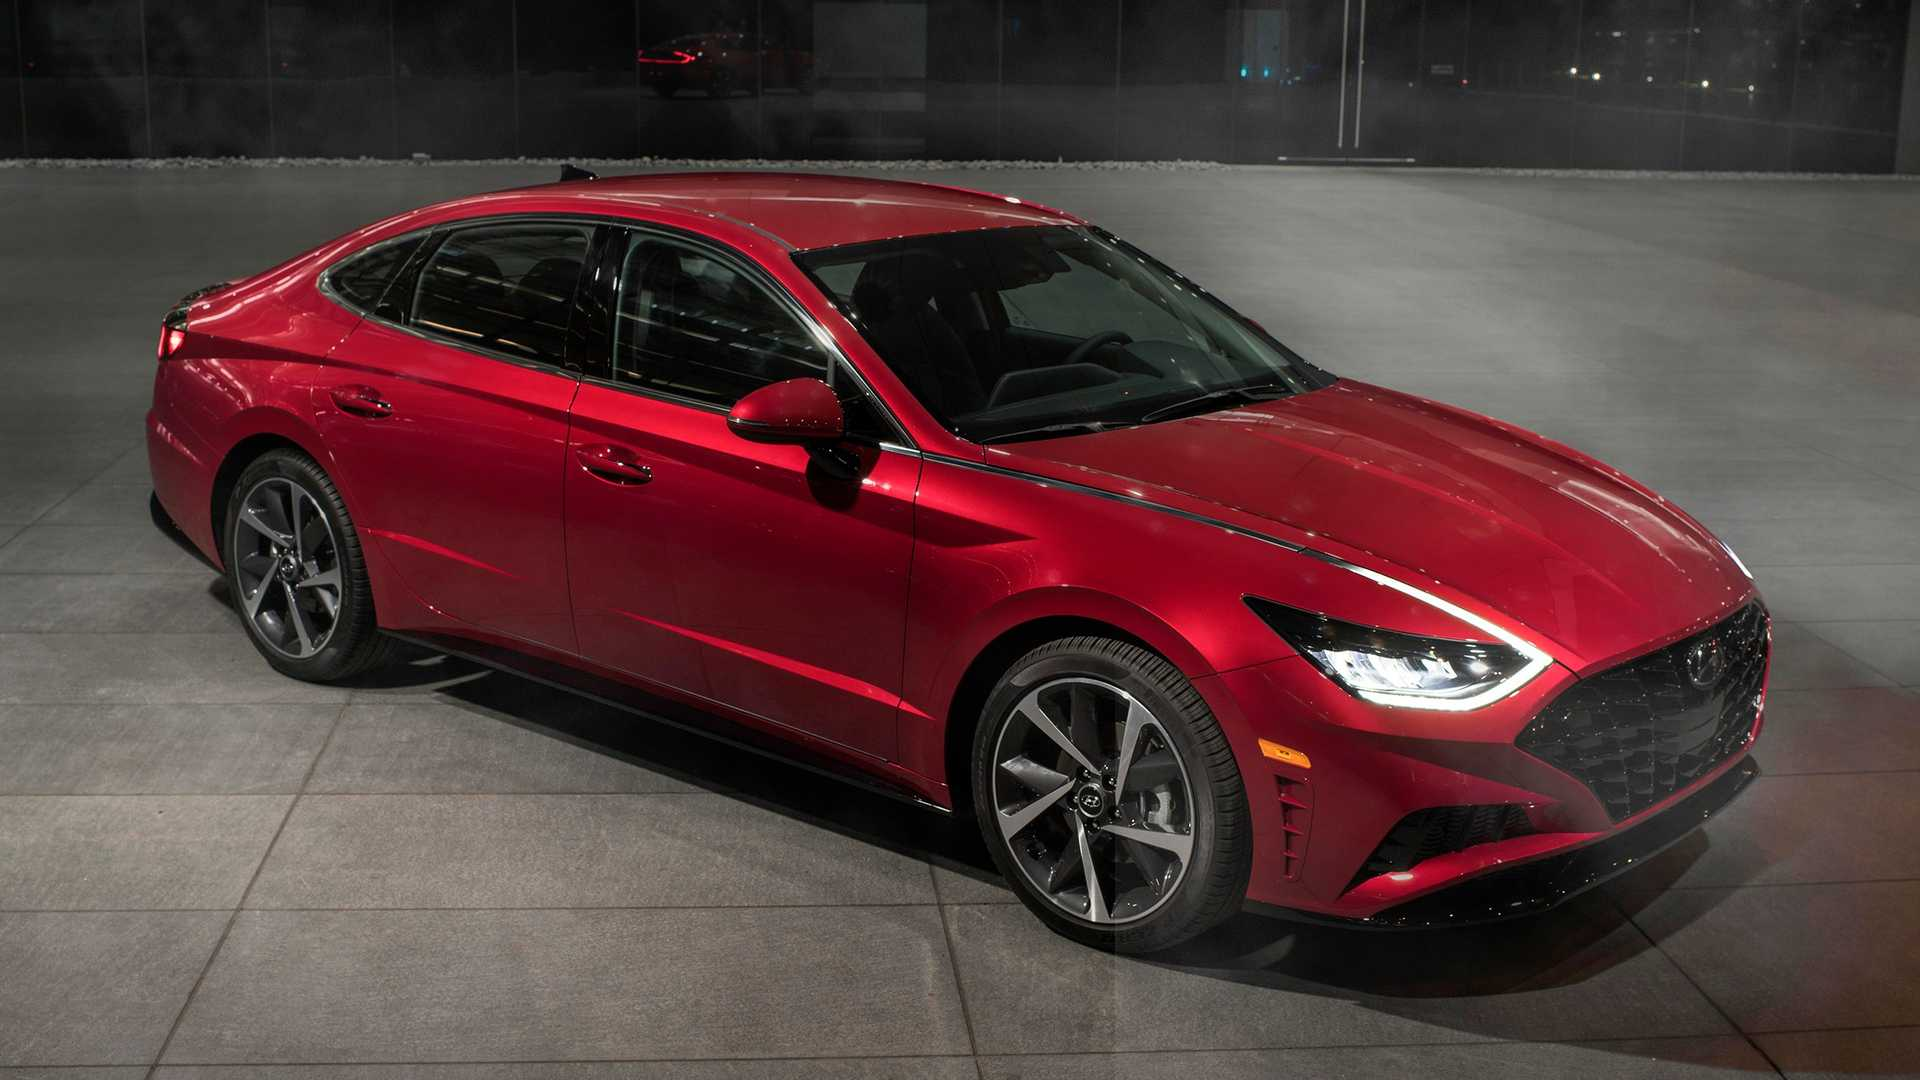 11 Concept of 2020 Hyundai Sonata N Line Exterior and Interior with 2020 Hyundai Sonata N Line